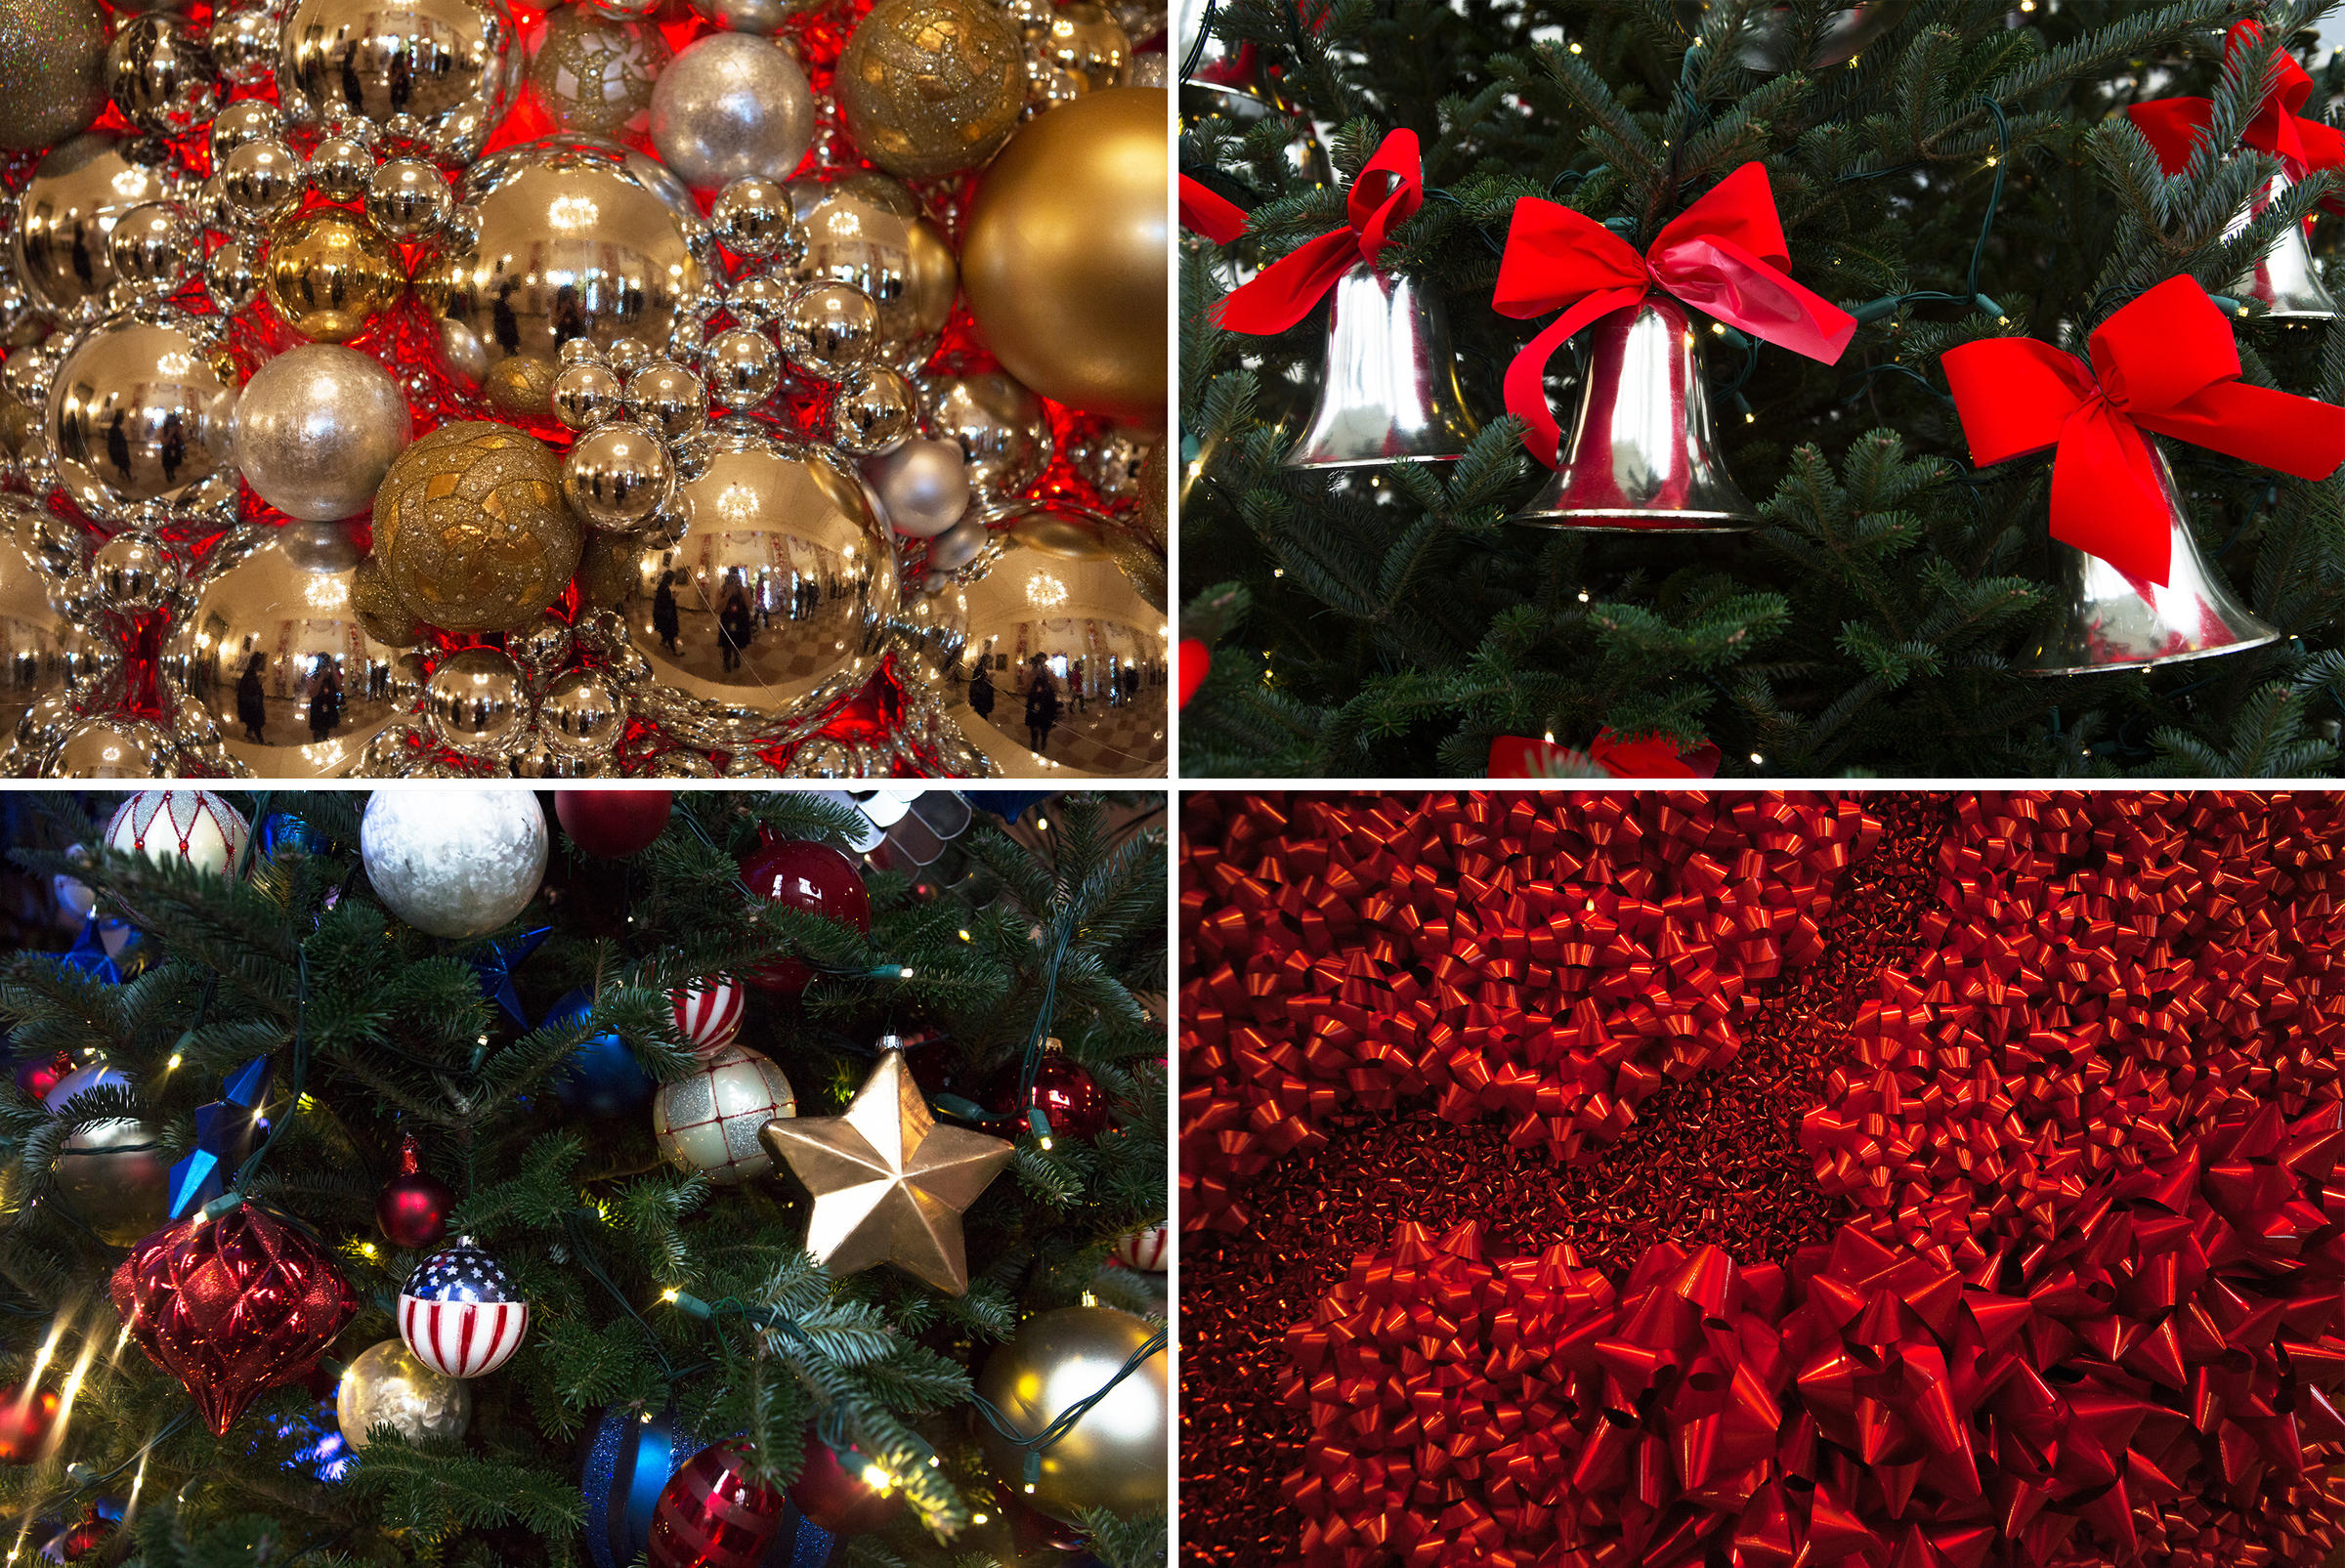 White house christmas ornaments by year - Most Of The Decoration Designs This Year Use Repurposed Ornaments And Embellishments That Were Already Part Of The White House Holiday Inventory